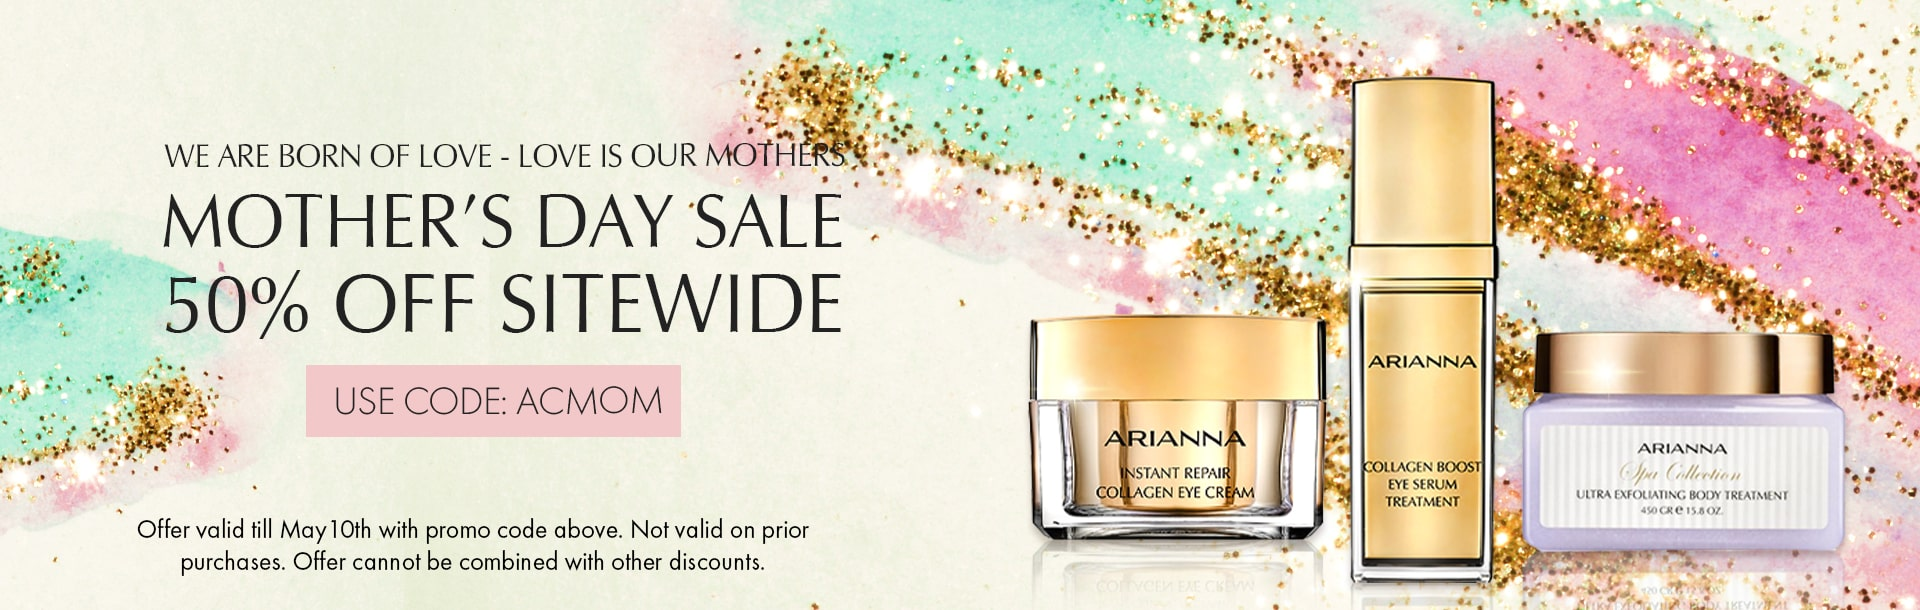 Mothers Day Sale - 50% OFF Sitewide